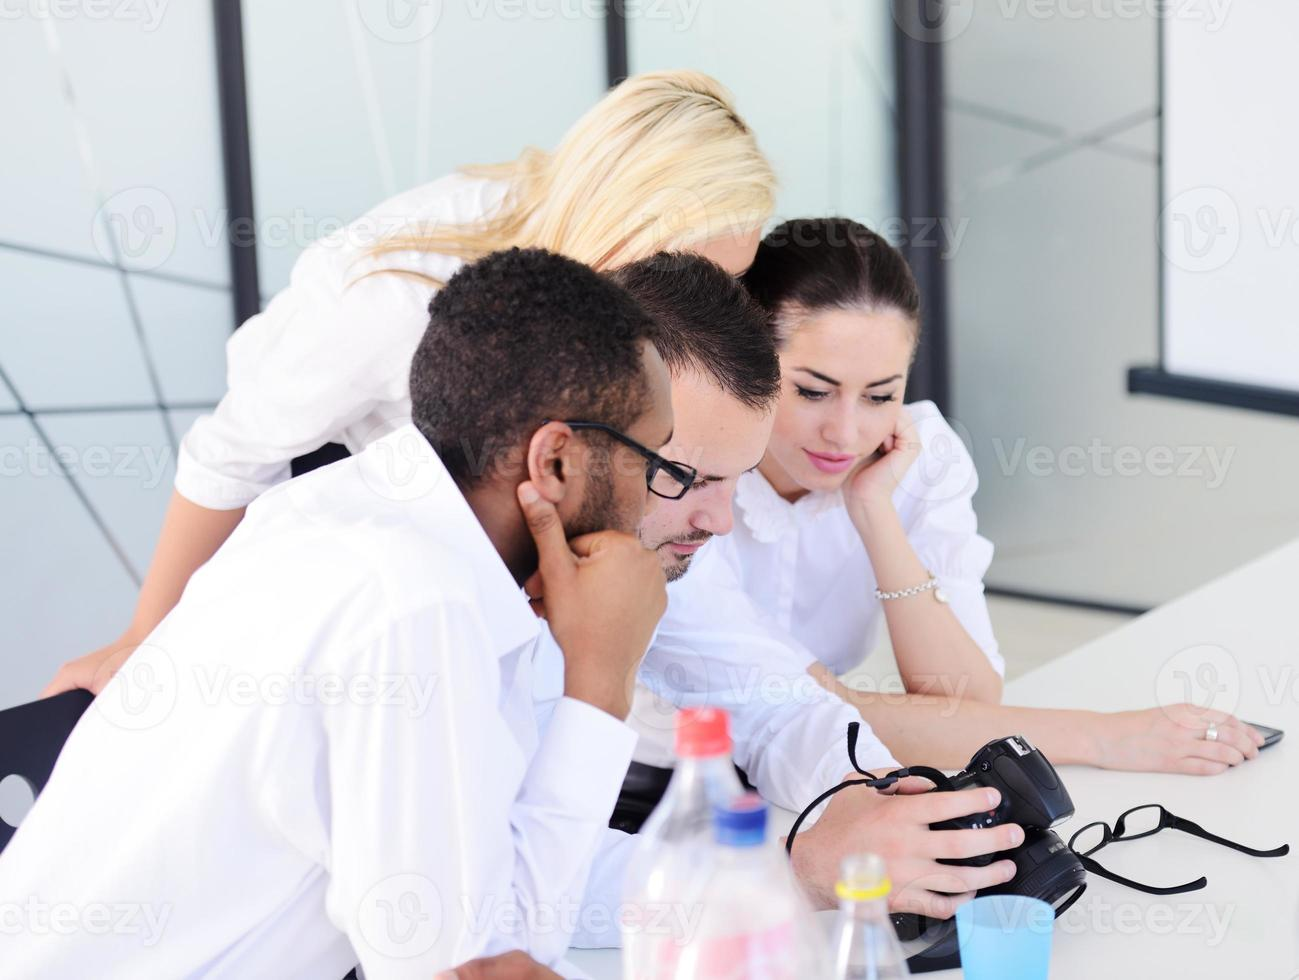 Middle eastern people having a business meeting at office photo